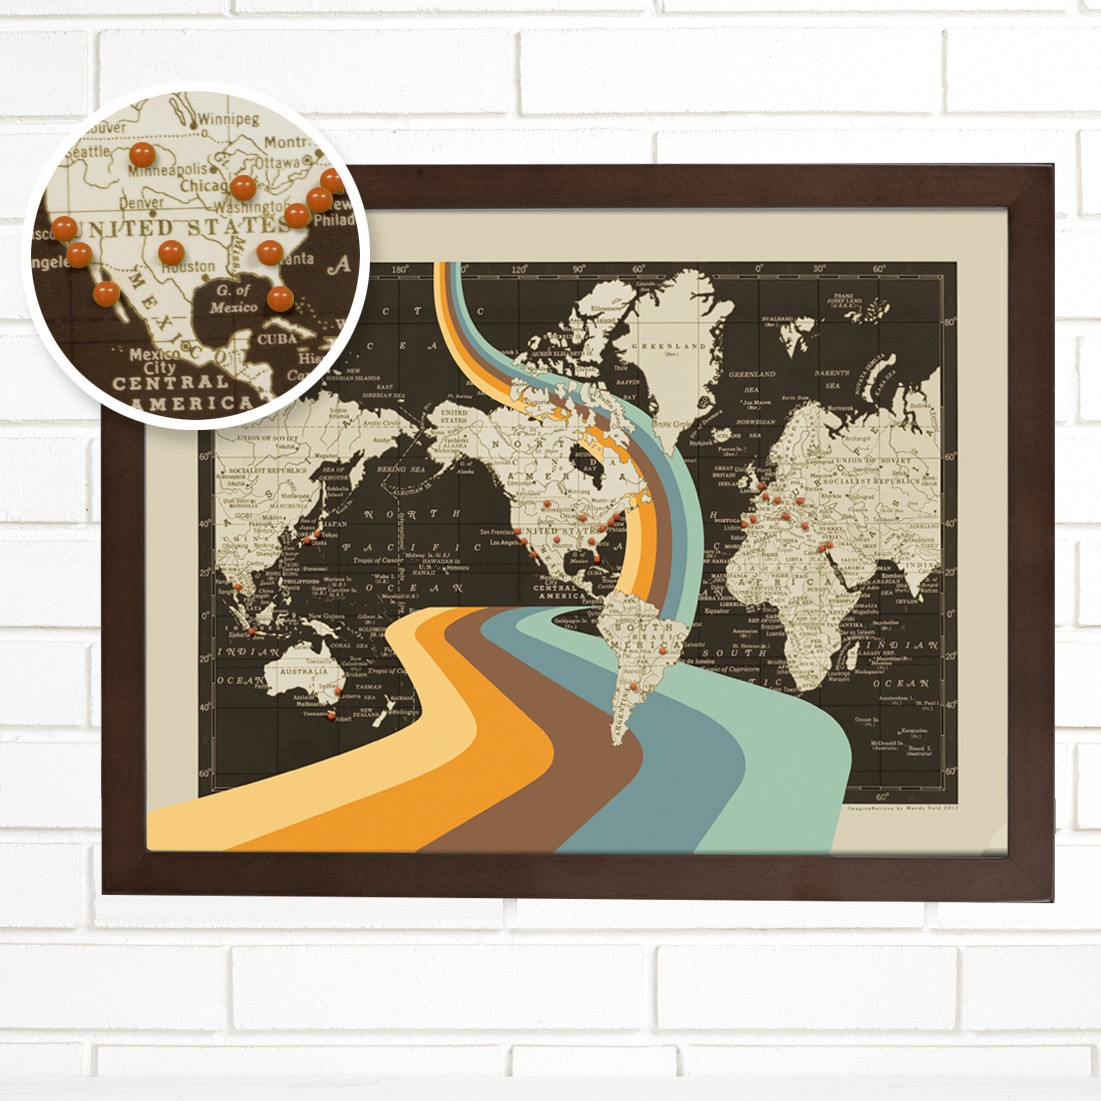 Worlds within a world vintage map and globe art by wendy gold world maps illustration art travel gumiabroncs Gallery